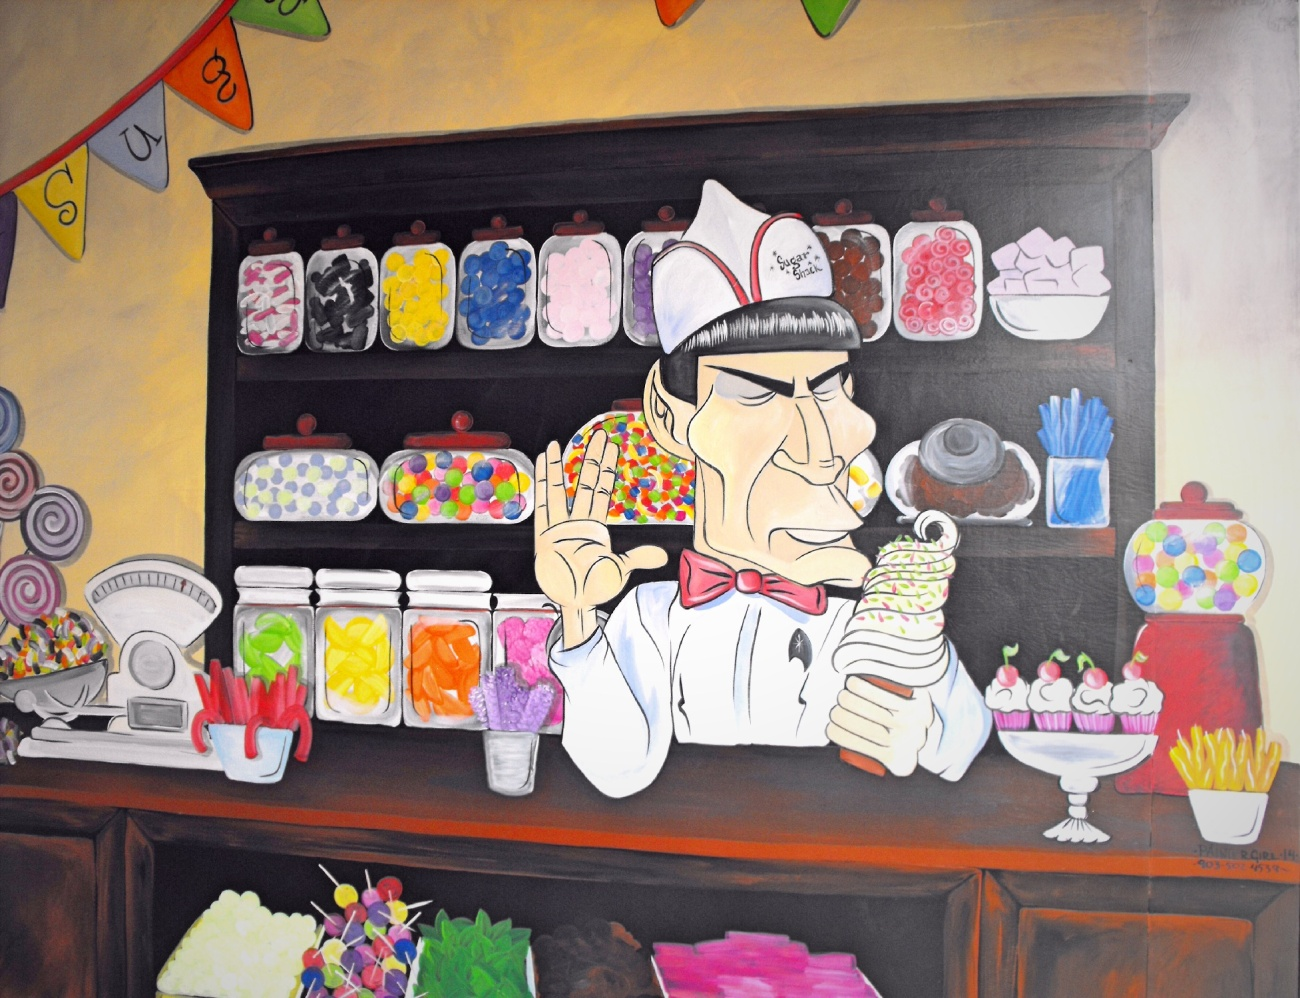 Spock's working in Vulcan as a candy clerk